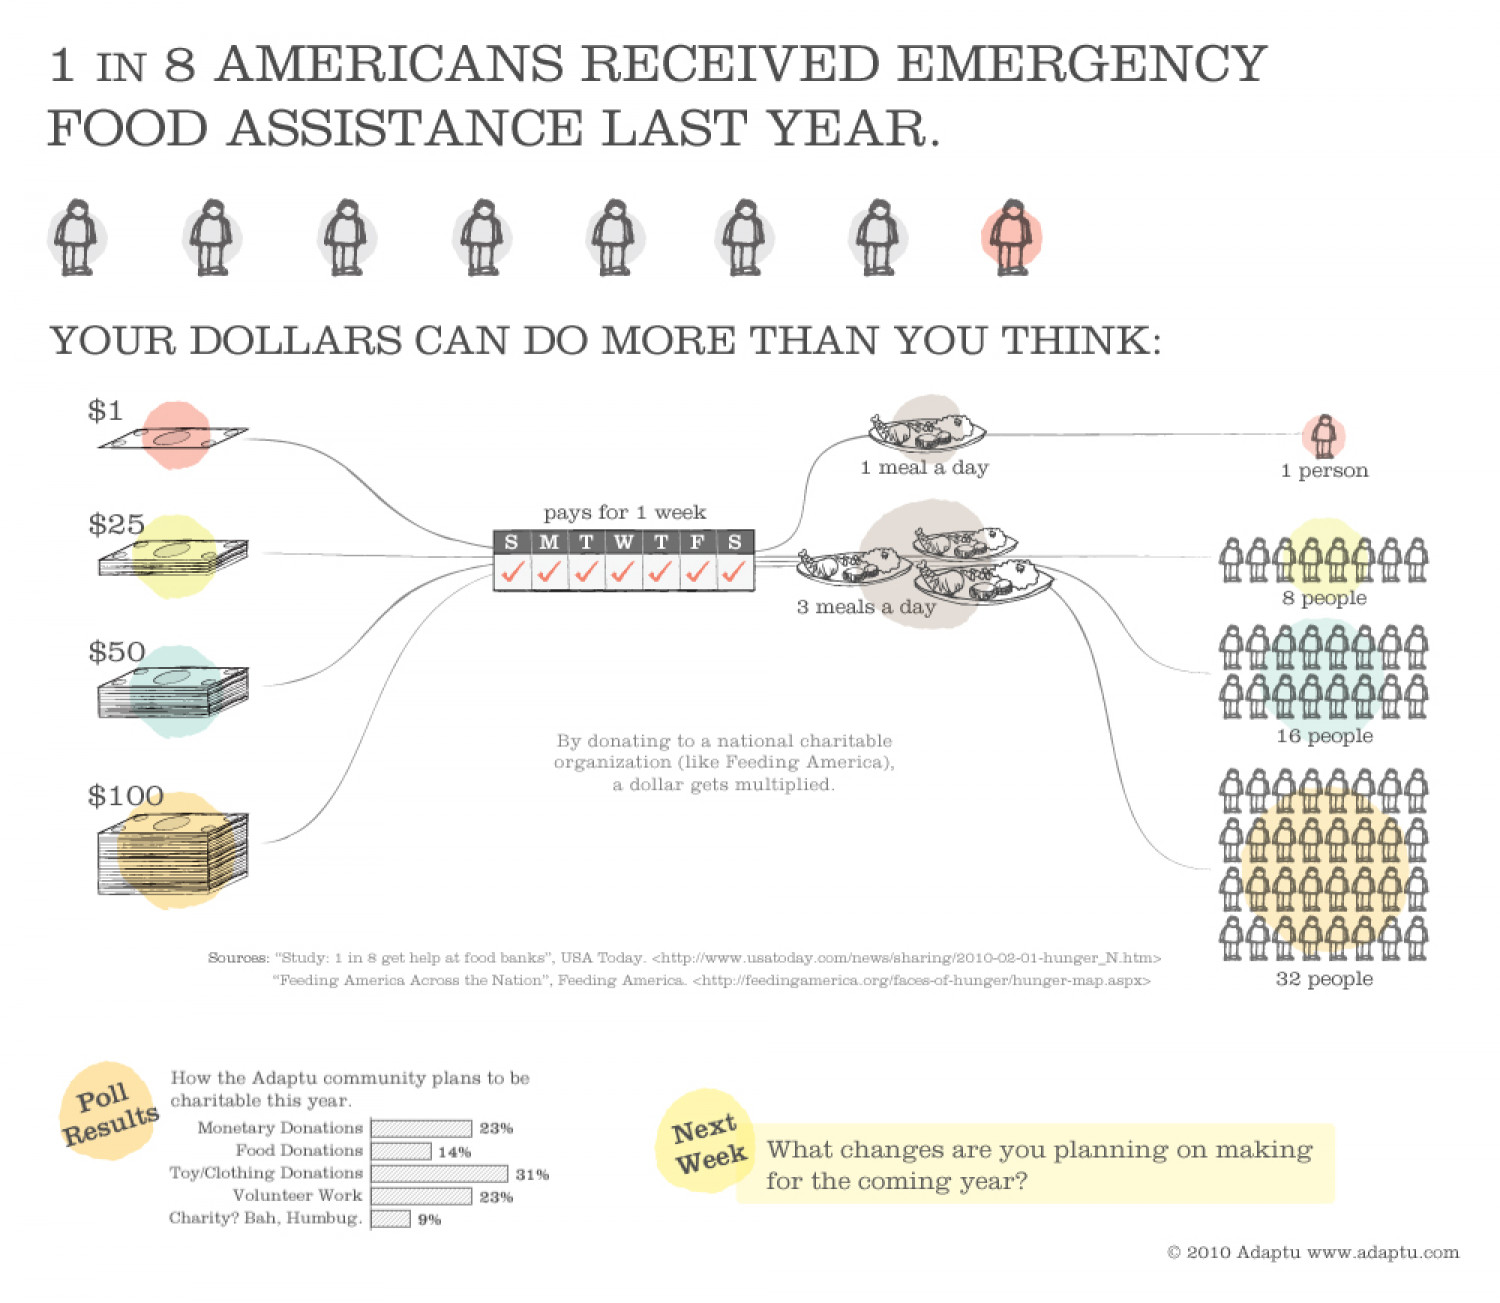 1 out of 8 Americans Received Emergency Food Assistance Last Year Infographic